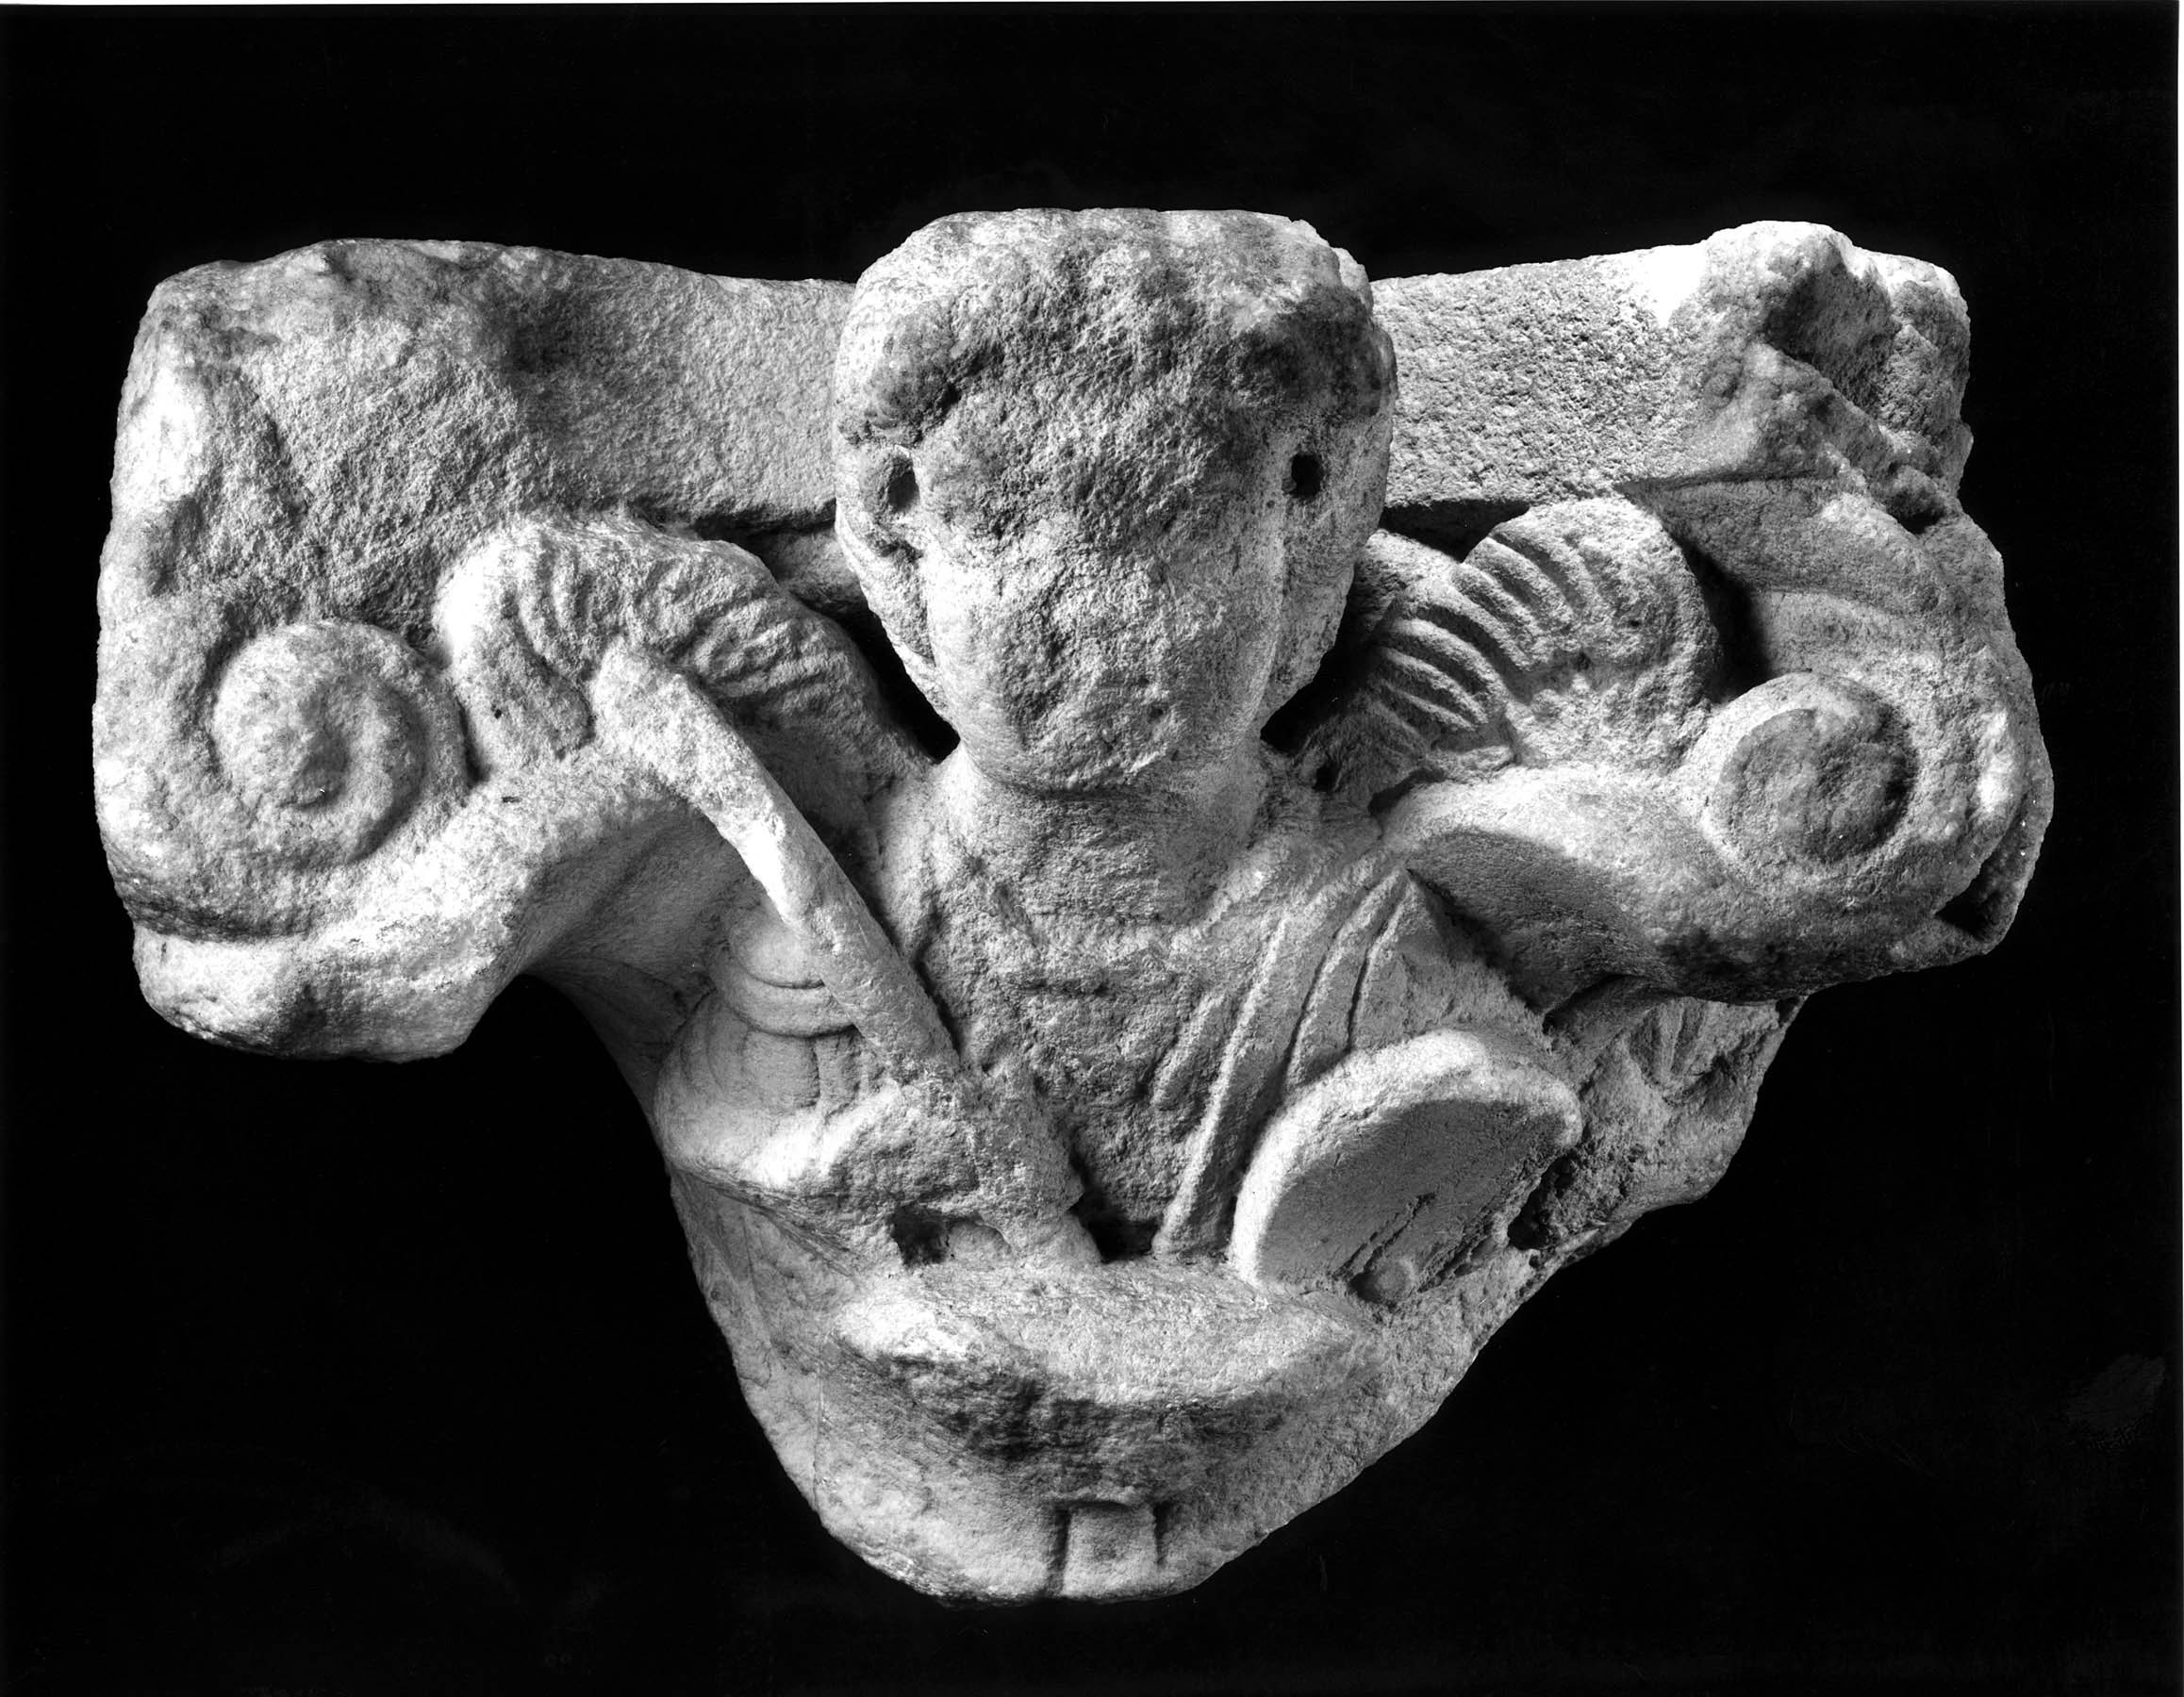 BZ.1950.24, Capital with Archangels